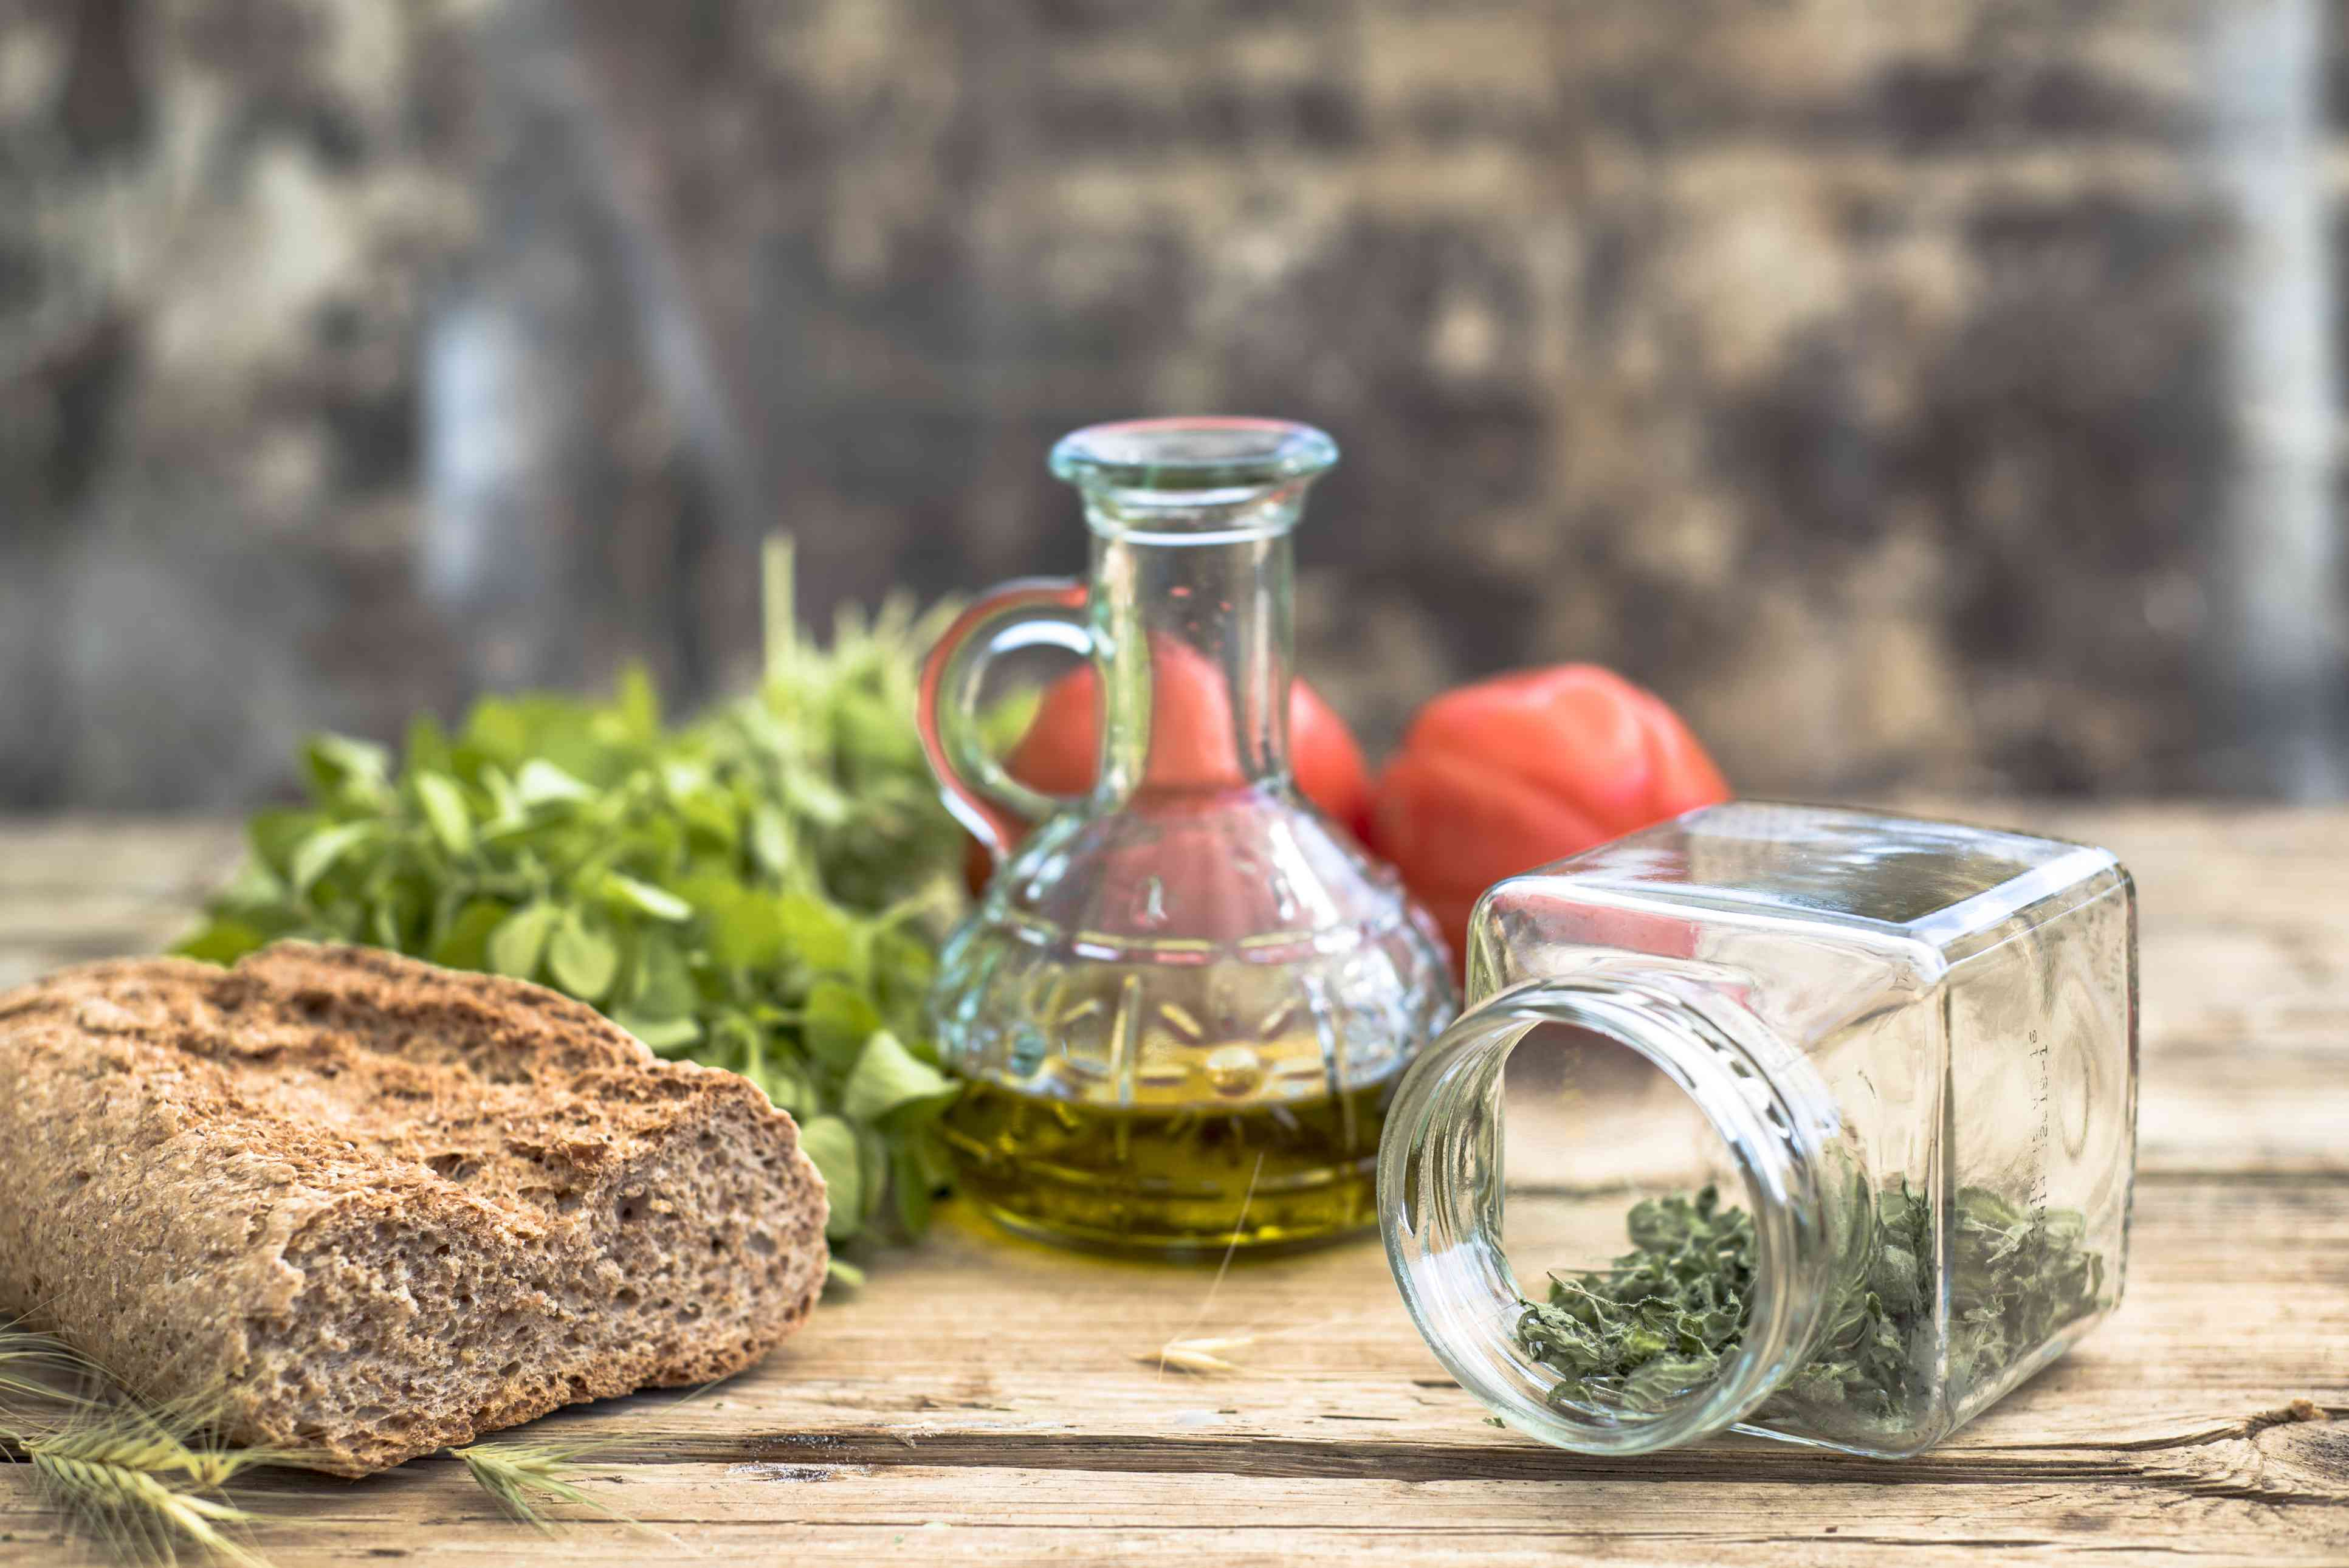 Olive oil, bread, herbs - components of the Mediterranean diet